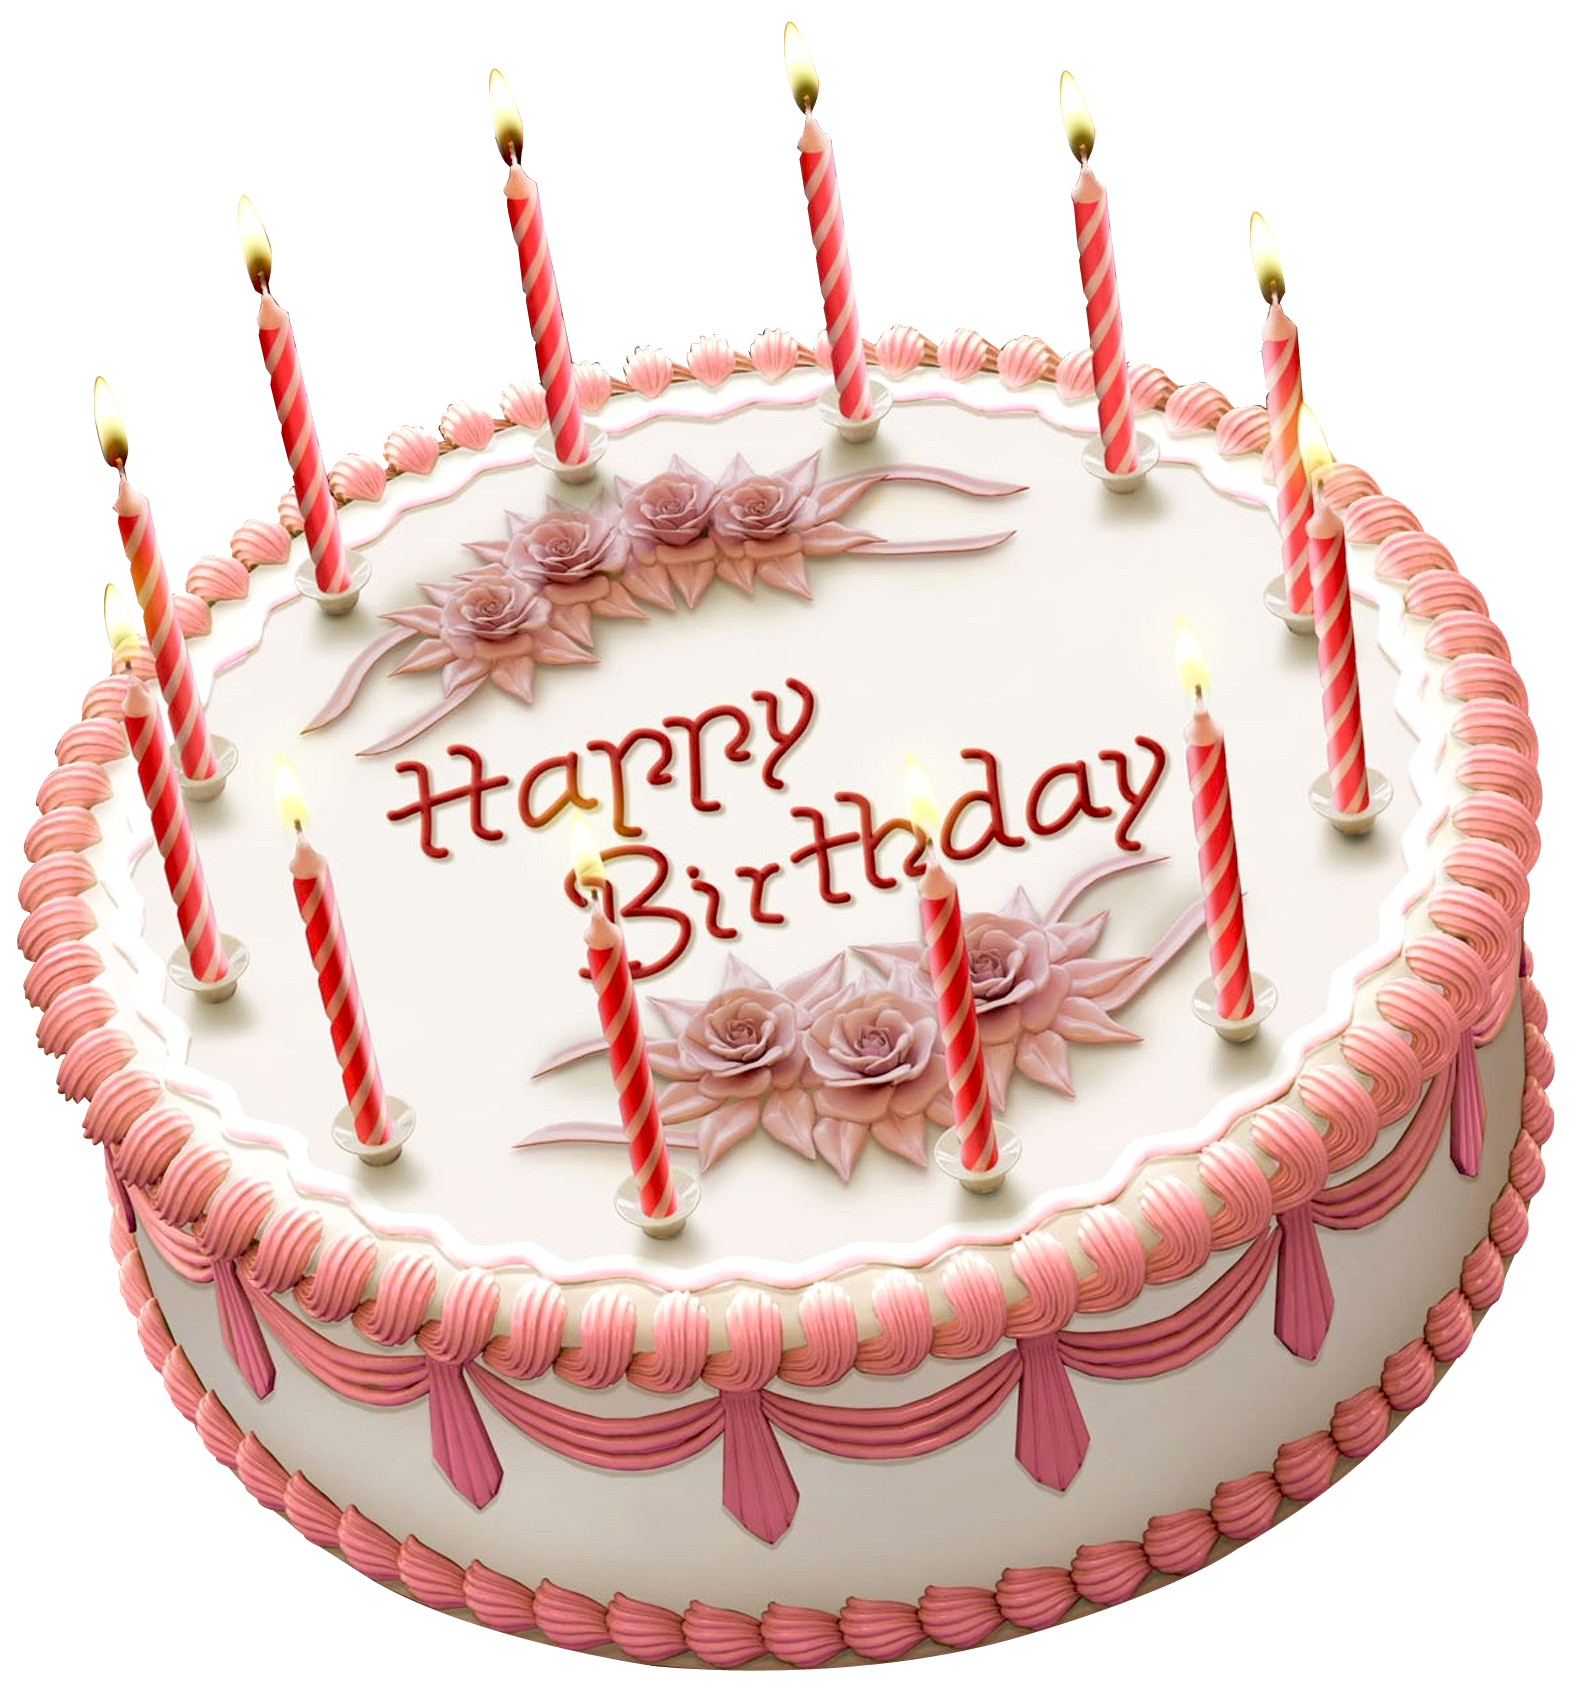 Birthday Cakes Images : Birthday Cake PNG image - PngPix